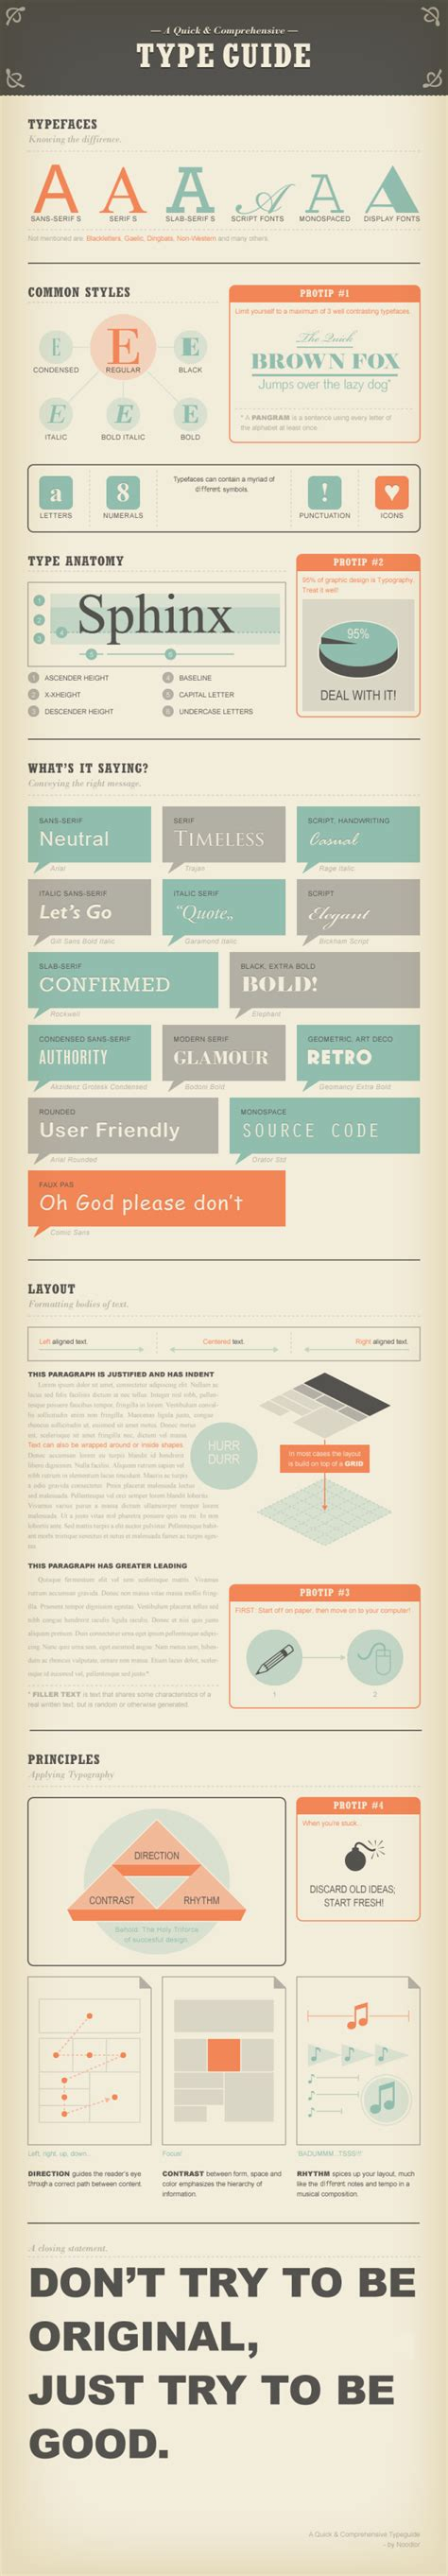 typography guide a and comprehensive type guide daily infographic